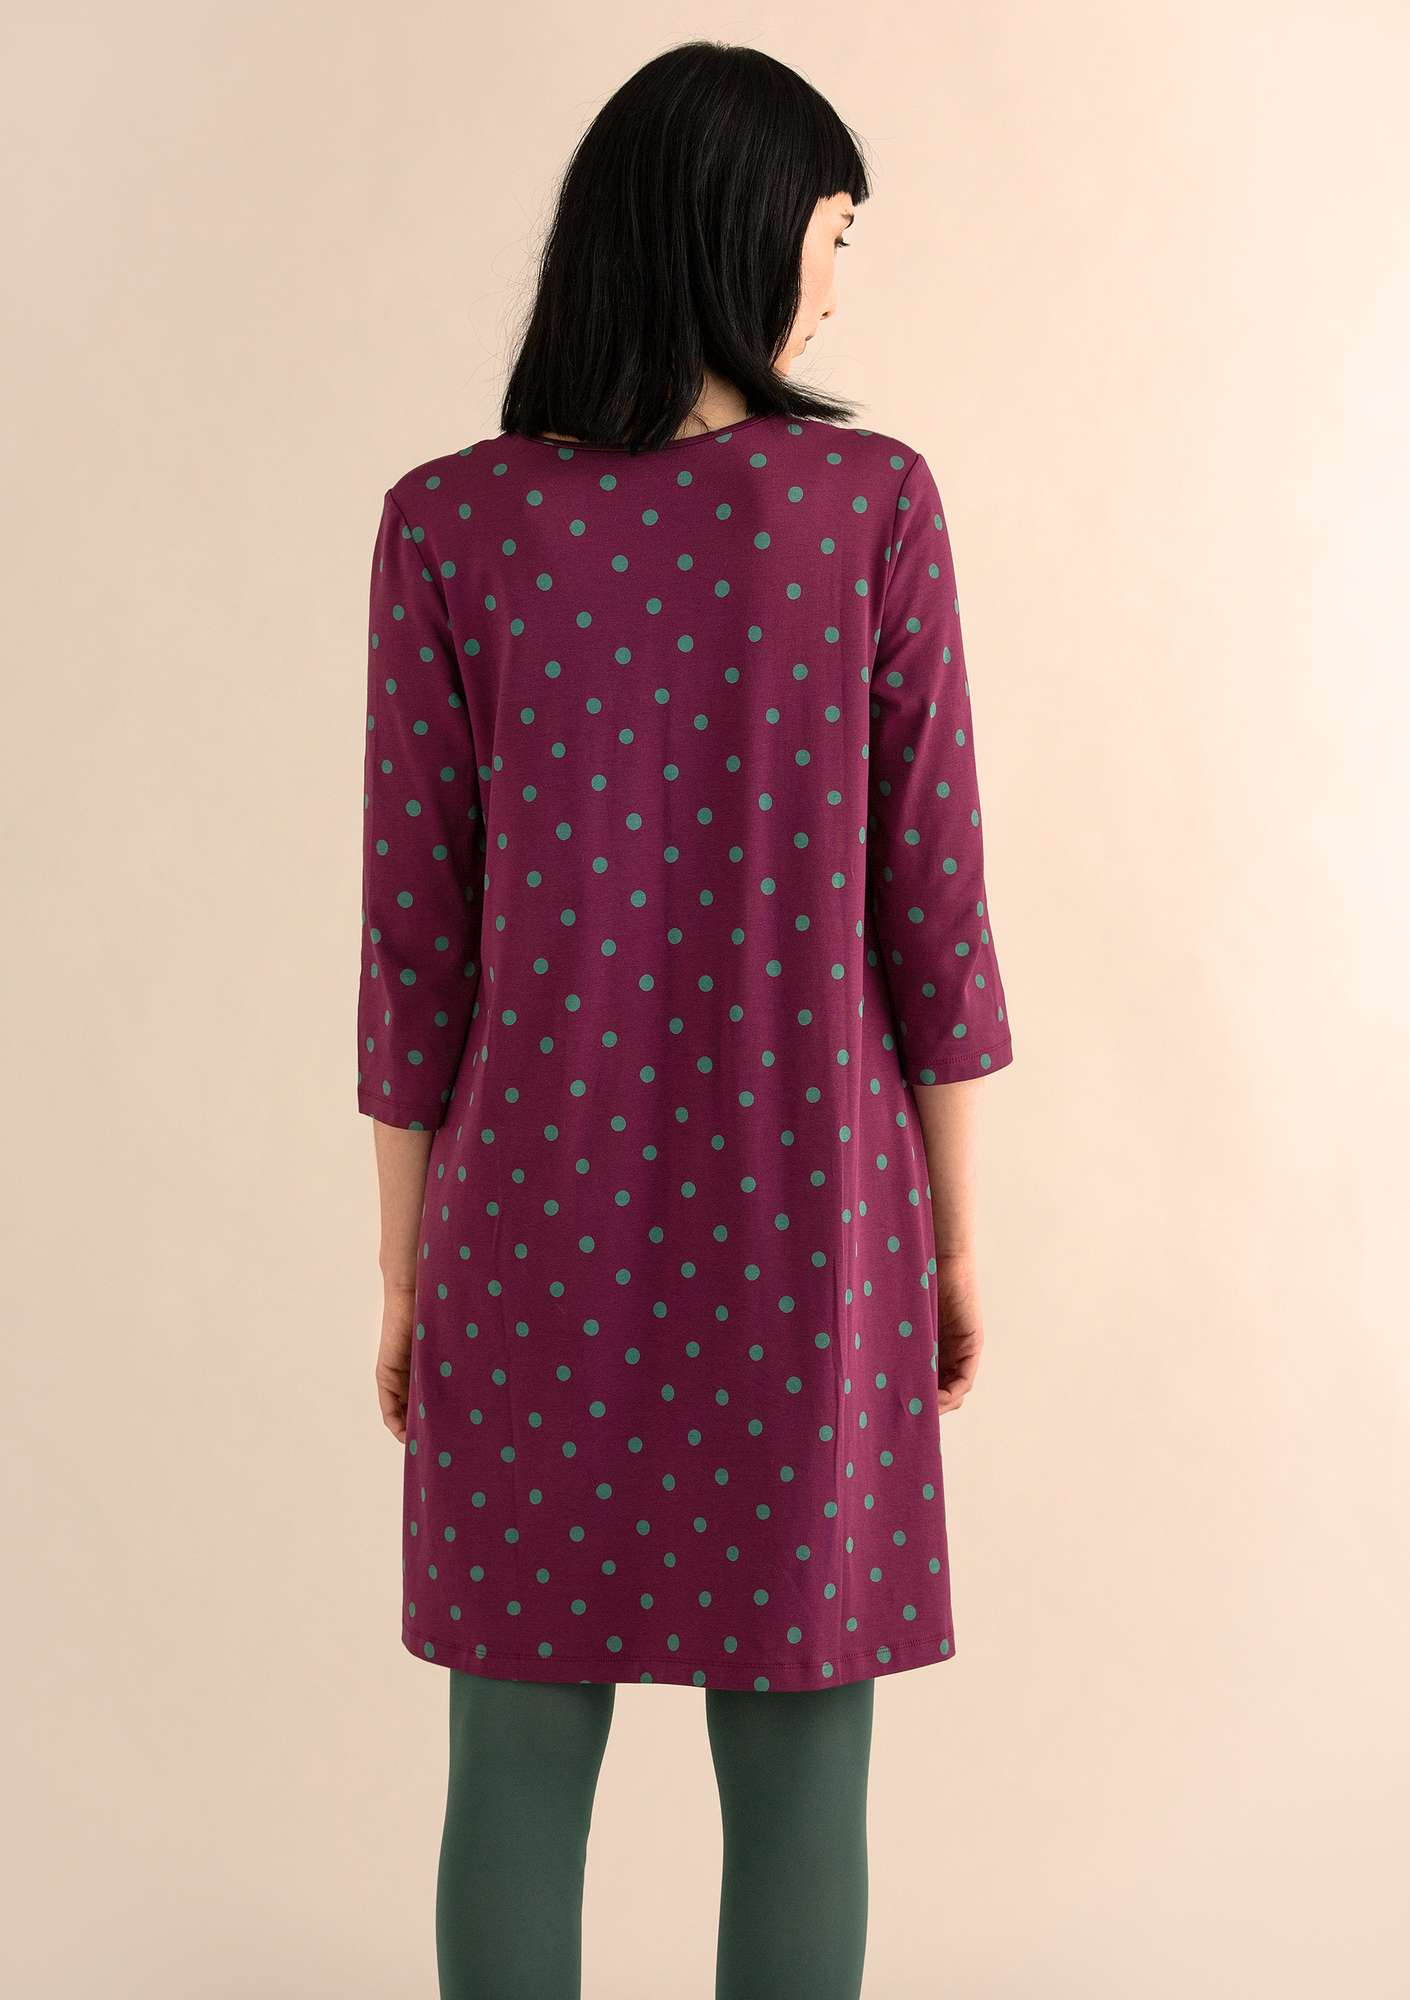 DOT dress in modal/eco-cotton/spandex grape/patterned